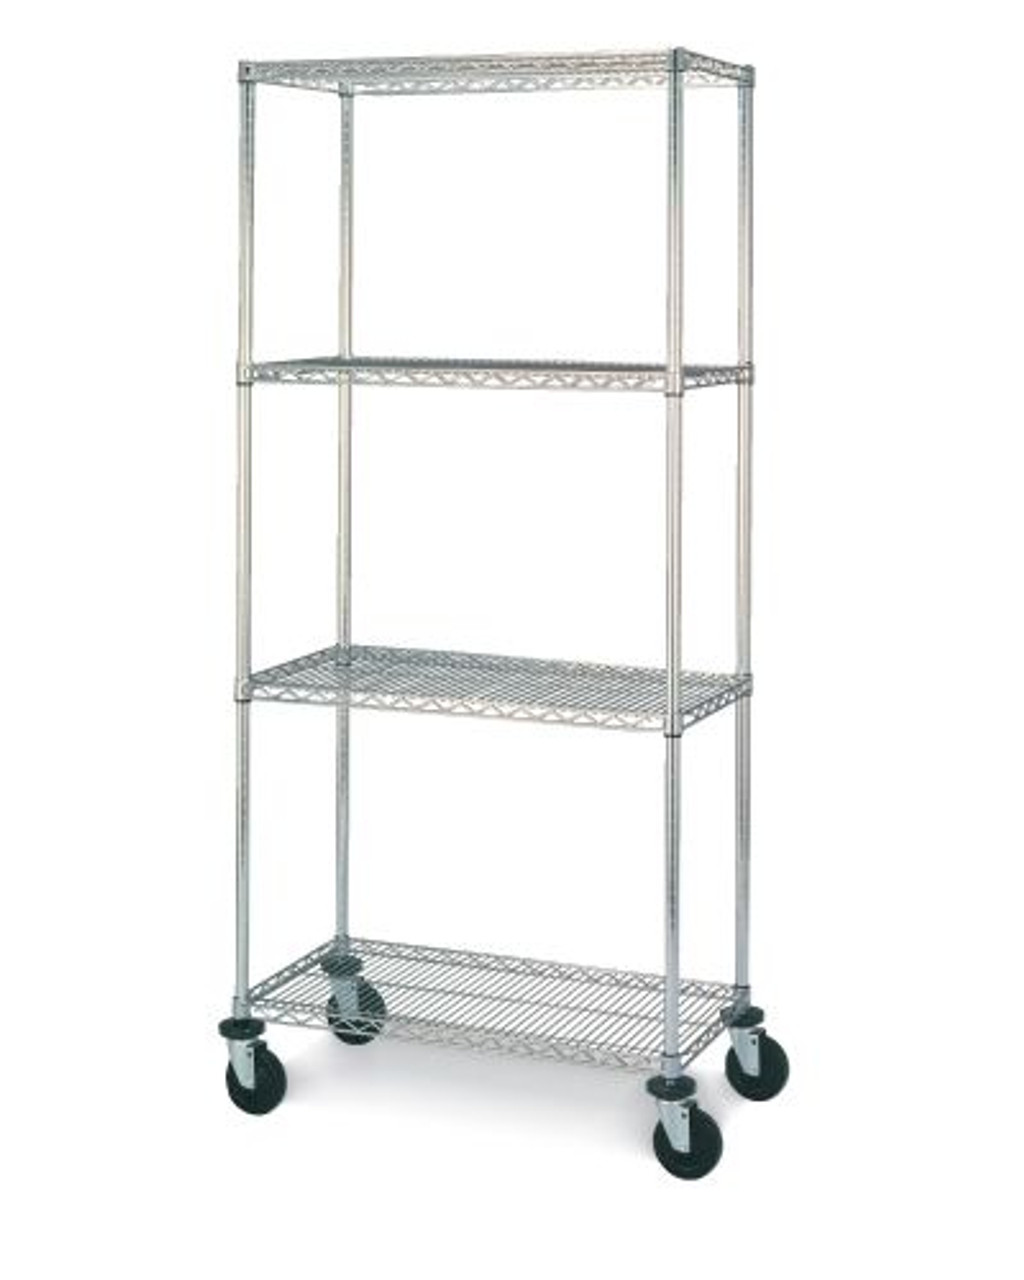 "Olympic 18"" Deep 4 Shelf Mobile Carts - Chrome - 18"" x 30"" x 68"" MJ1830-63UC"